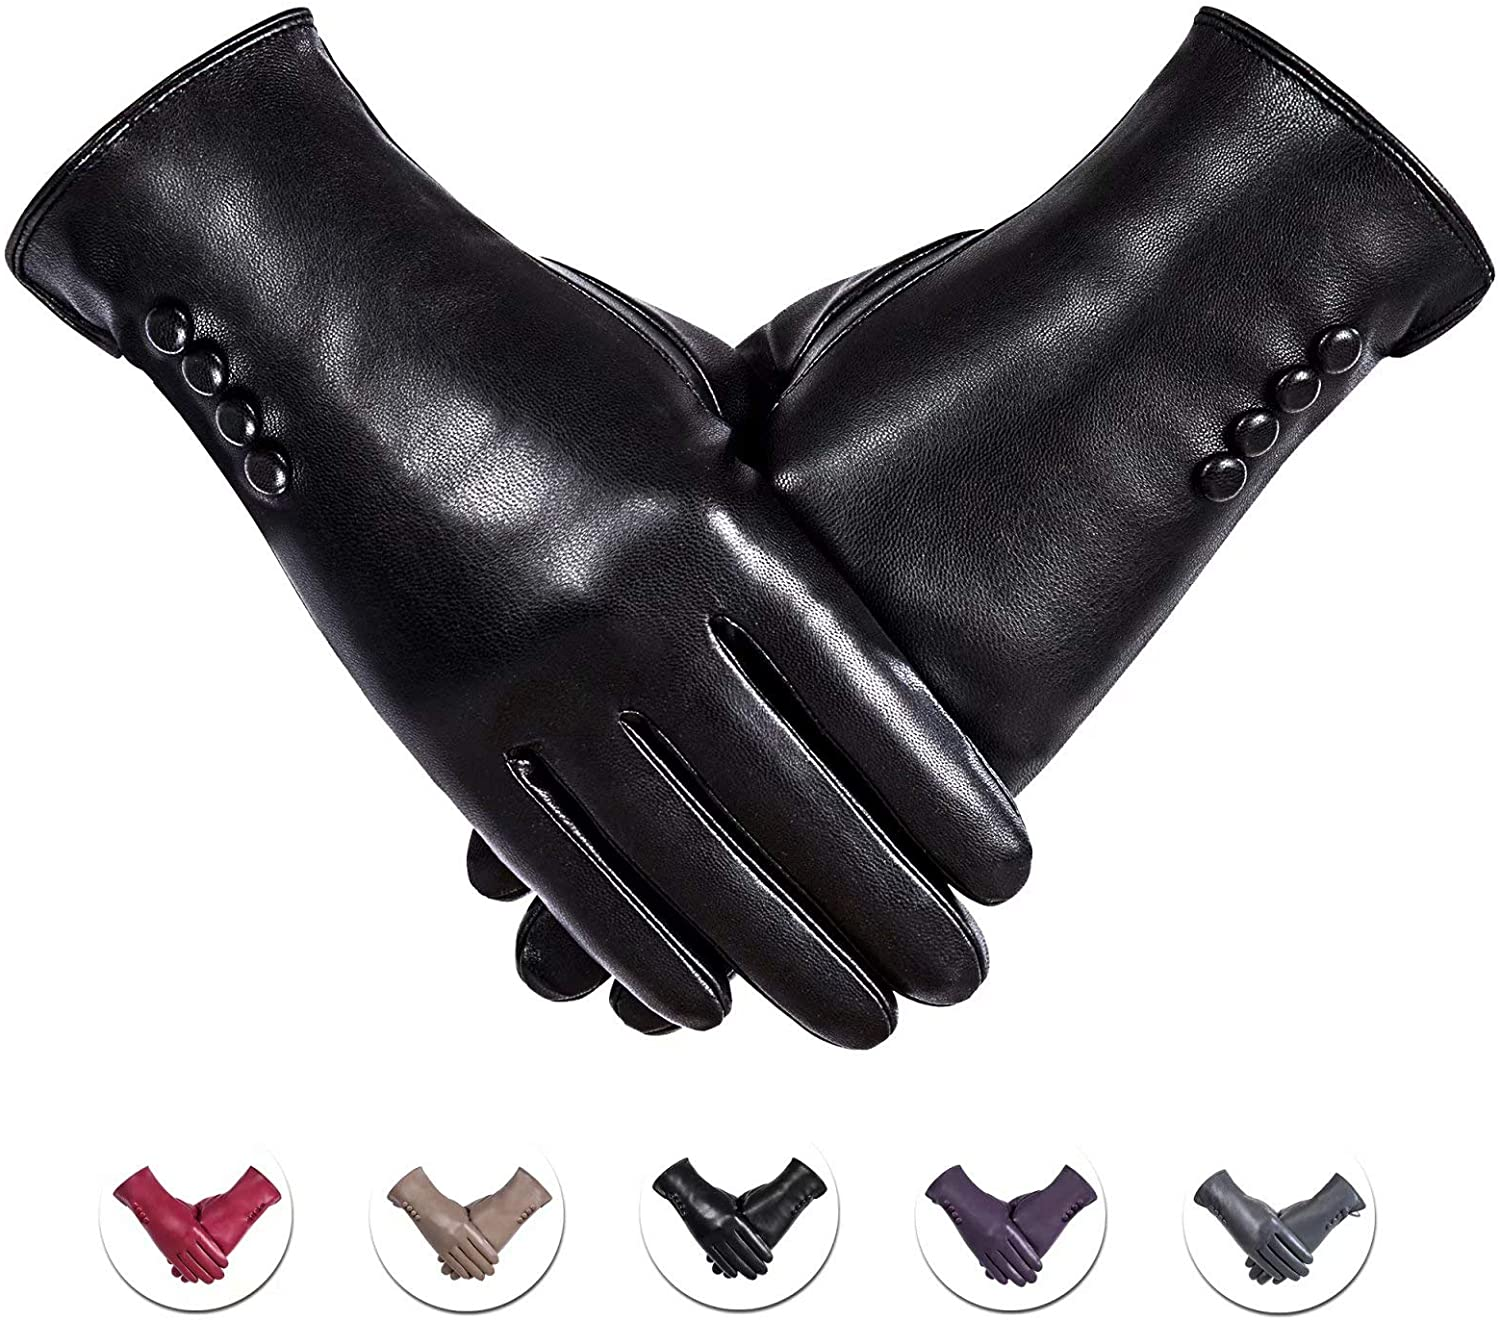 Winter PU Leather Gloves For Women, Warm Thermal Touchscreen Texting Typing Dress Driving Motorcycle Gloves With Wool Lining